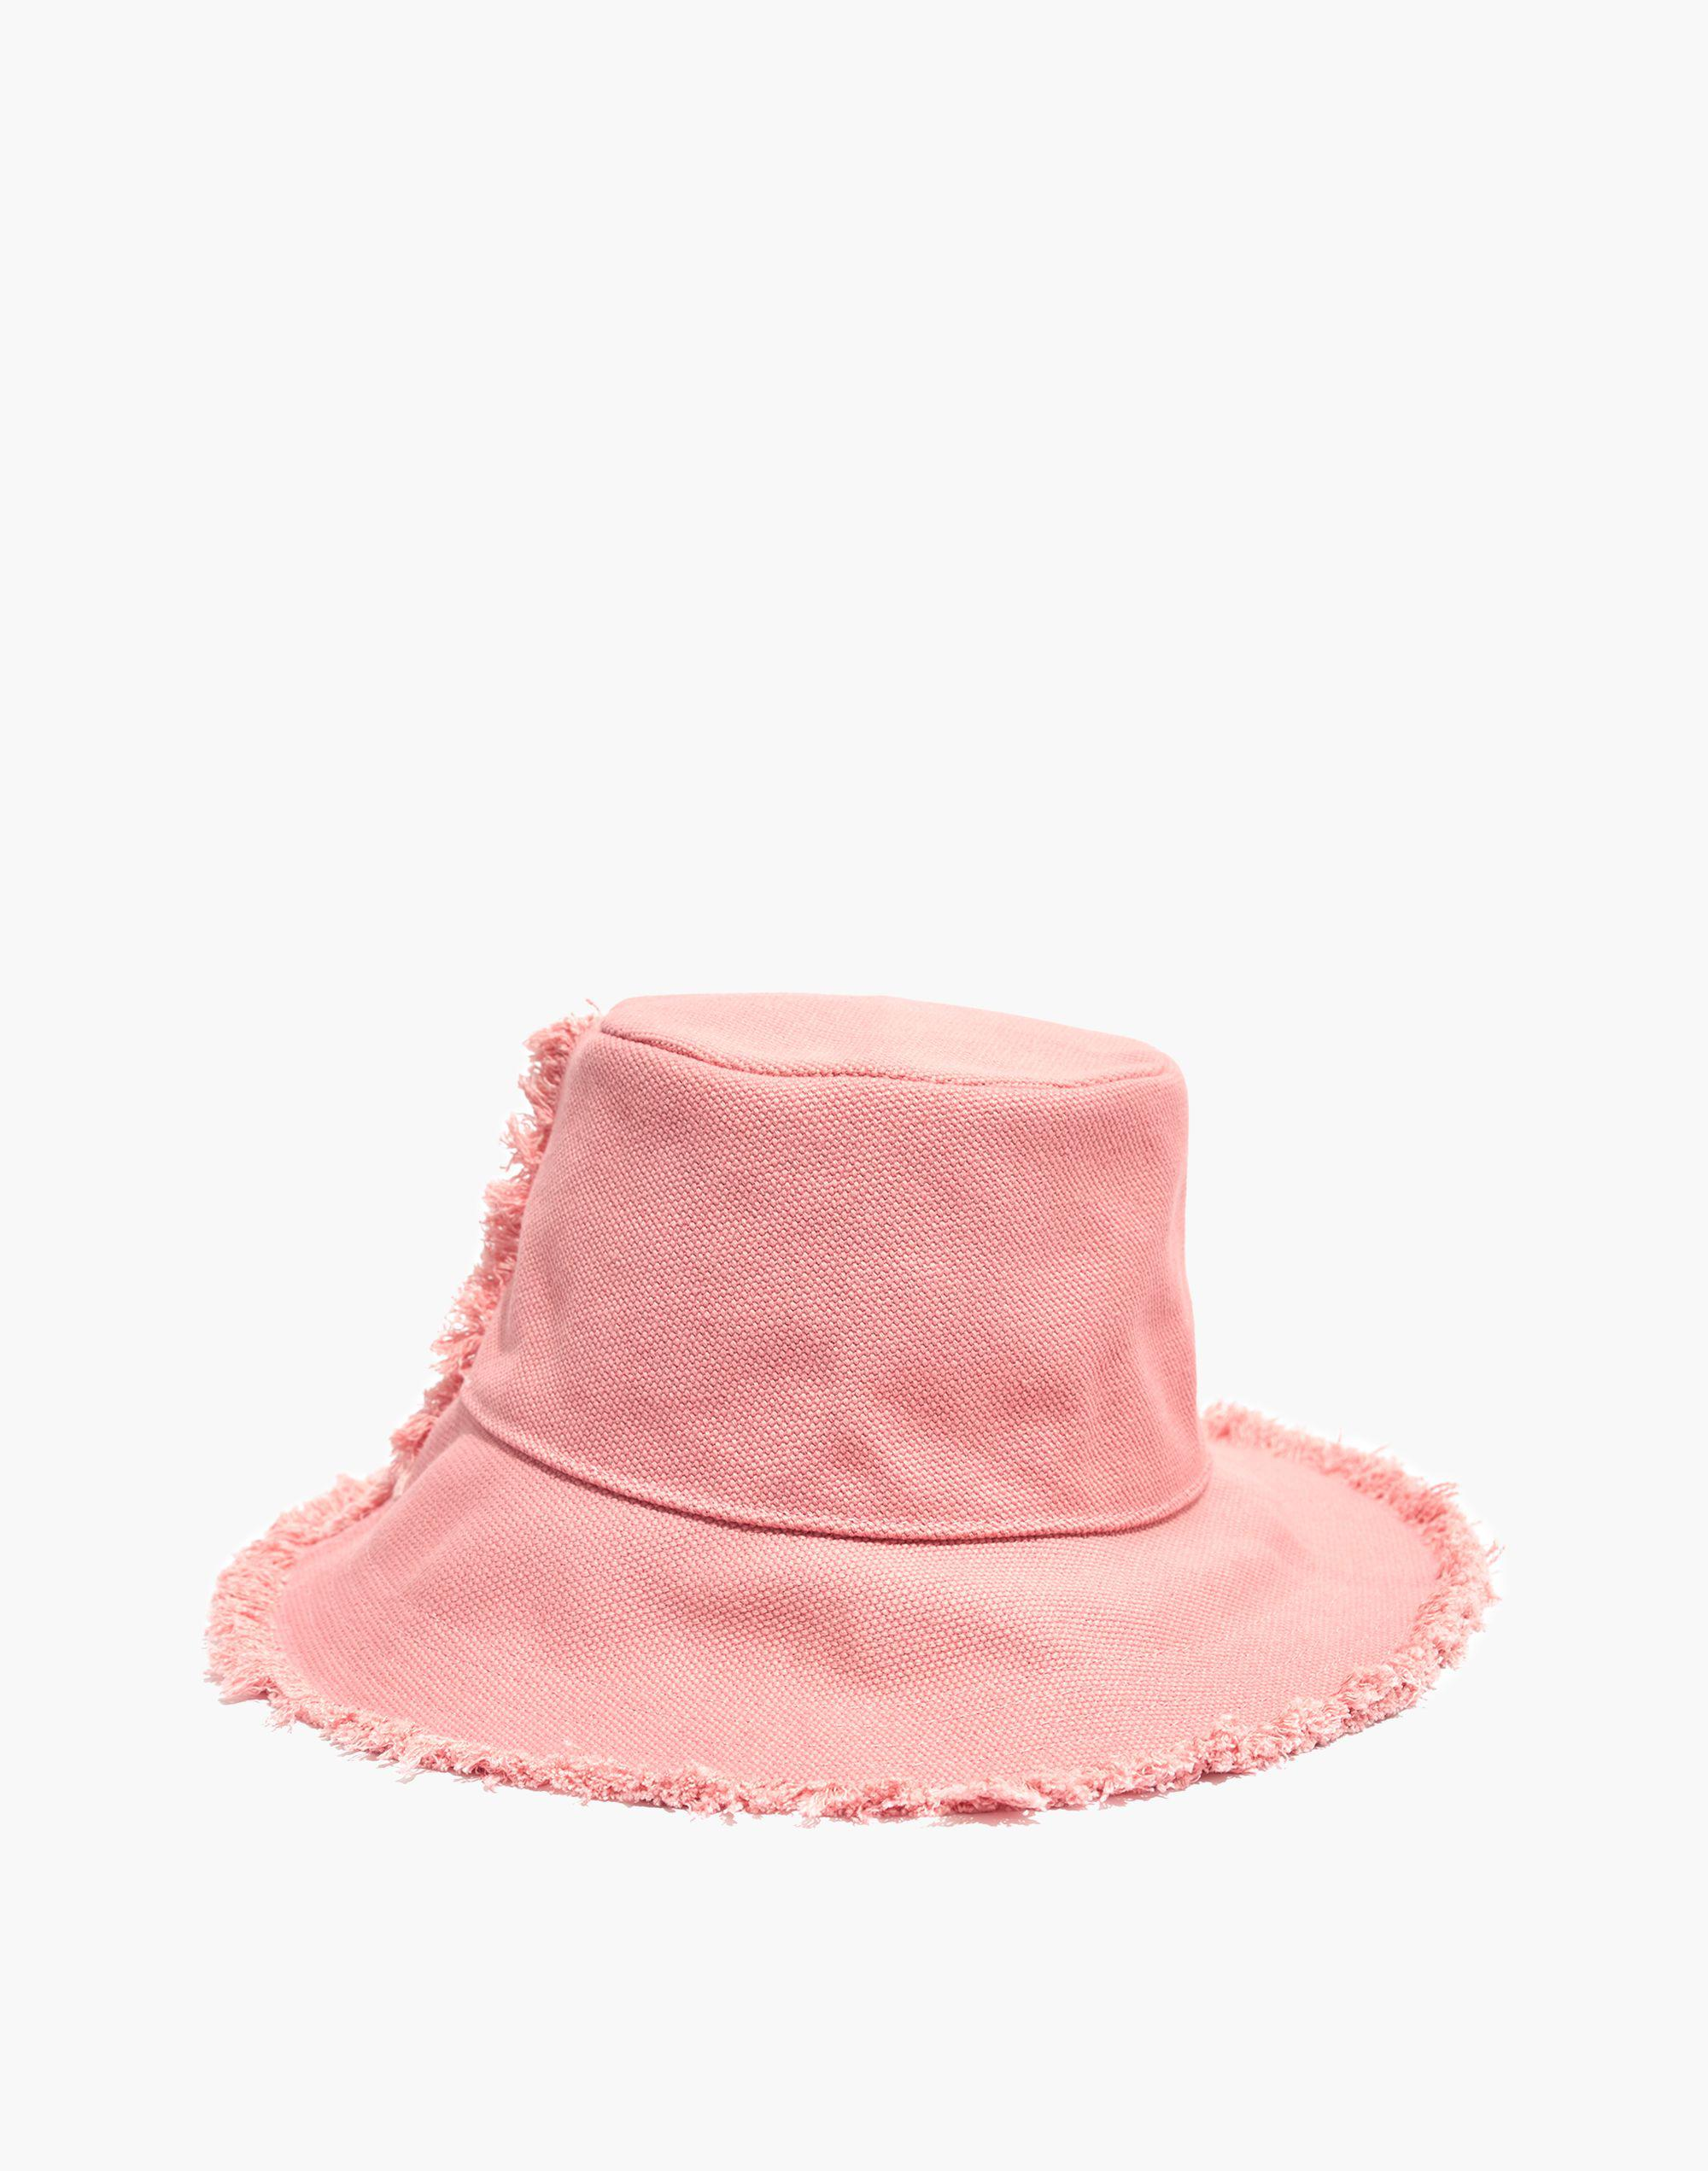 23c631b7aef5e Madewell Canvas Bucket Hat in Pink - Lyst